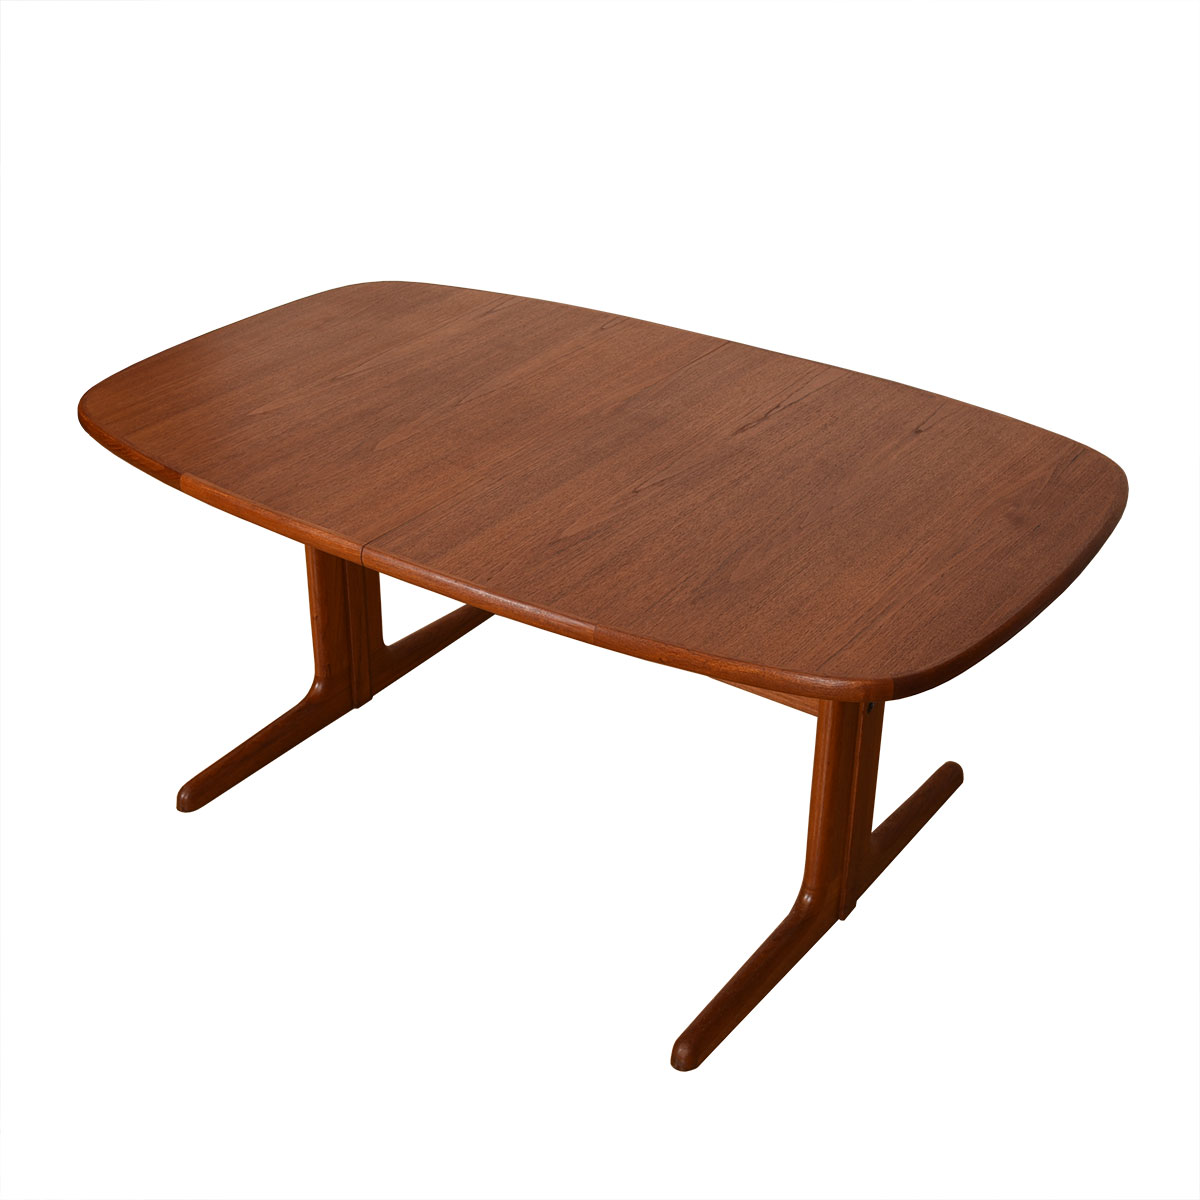 Danish Teak Rounded-Edge Expanding Dining Table